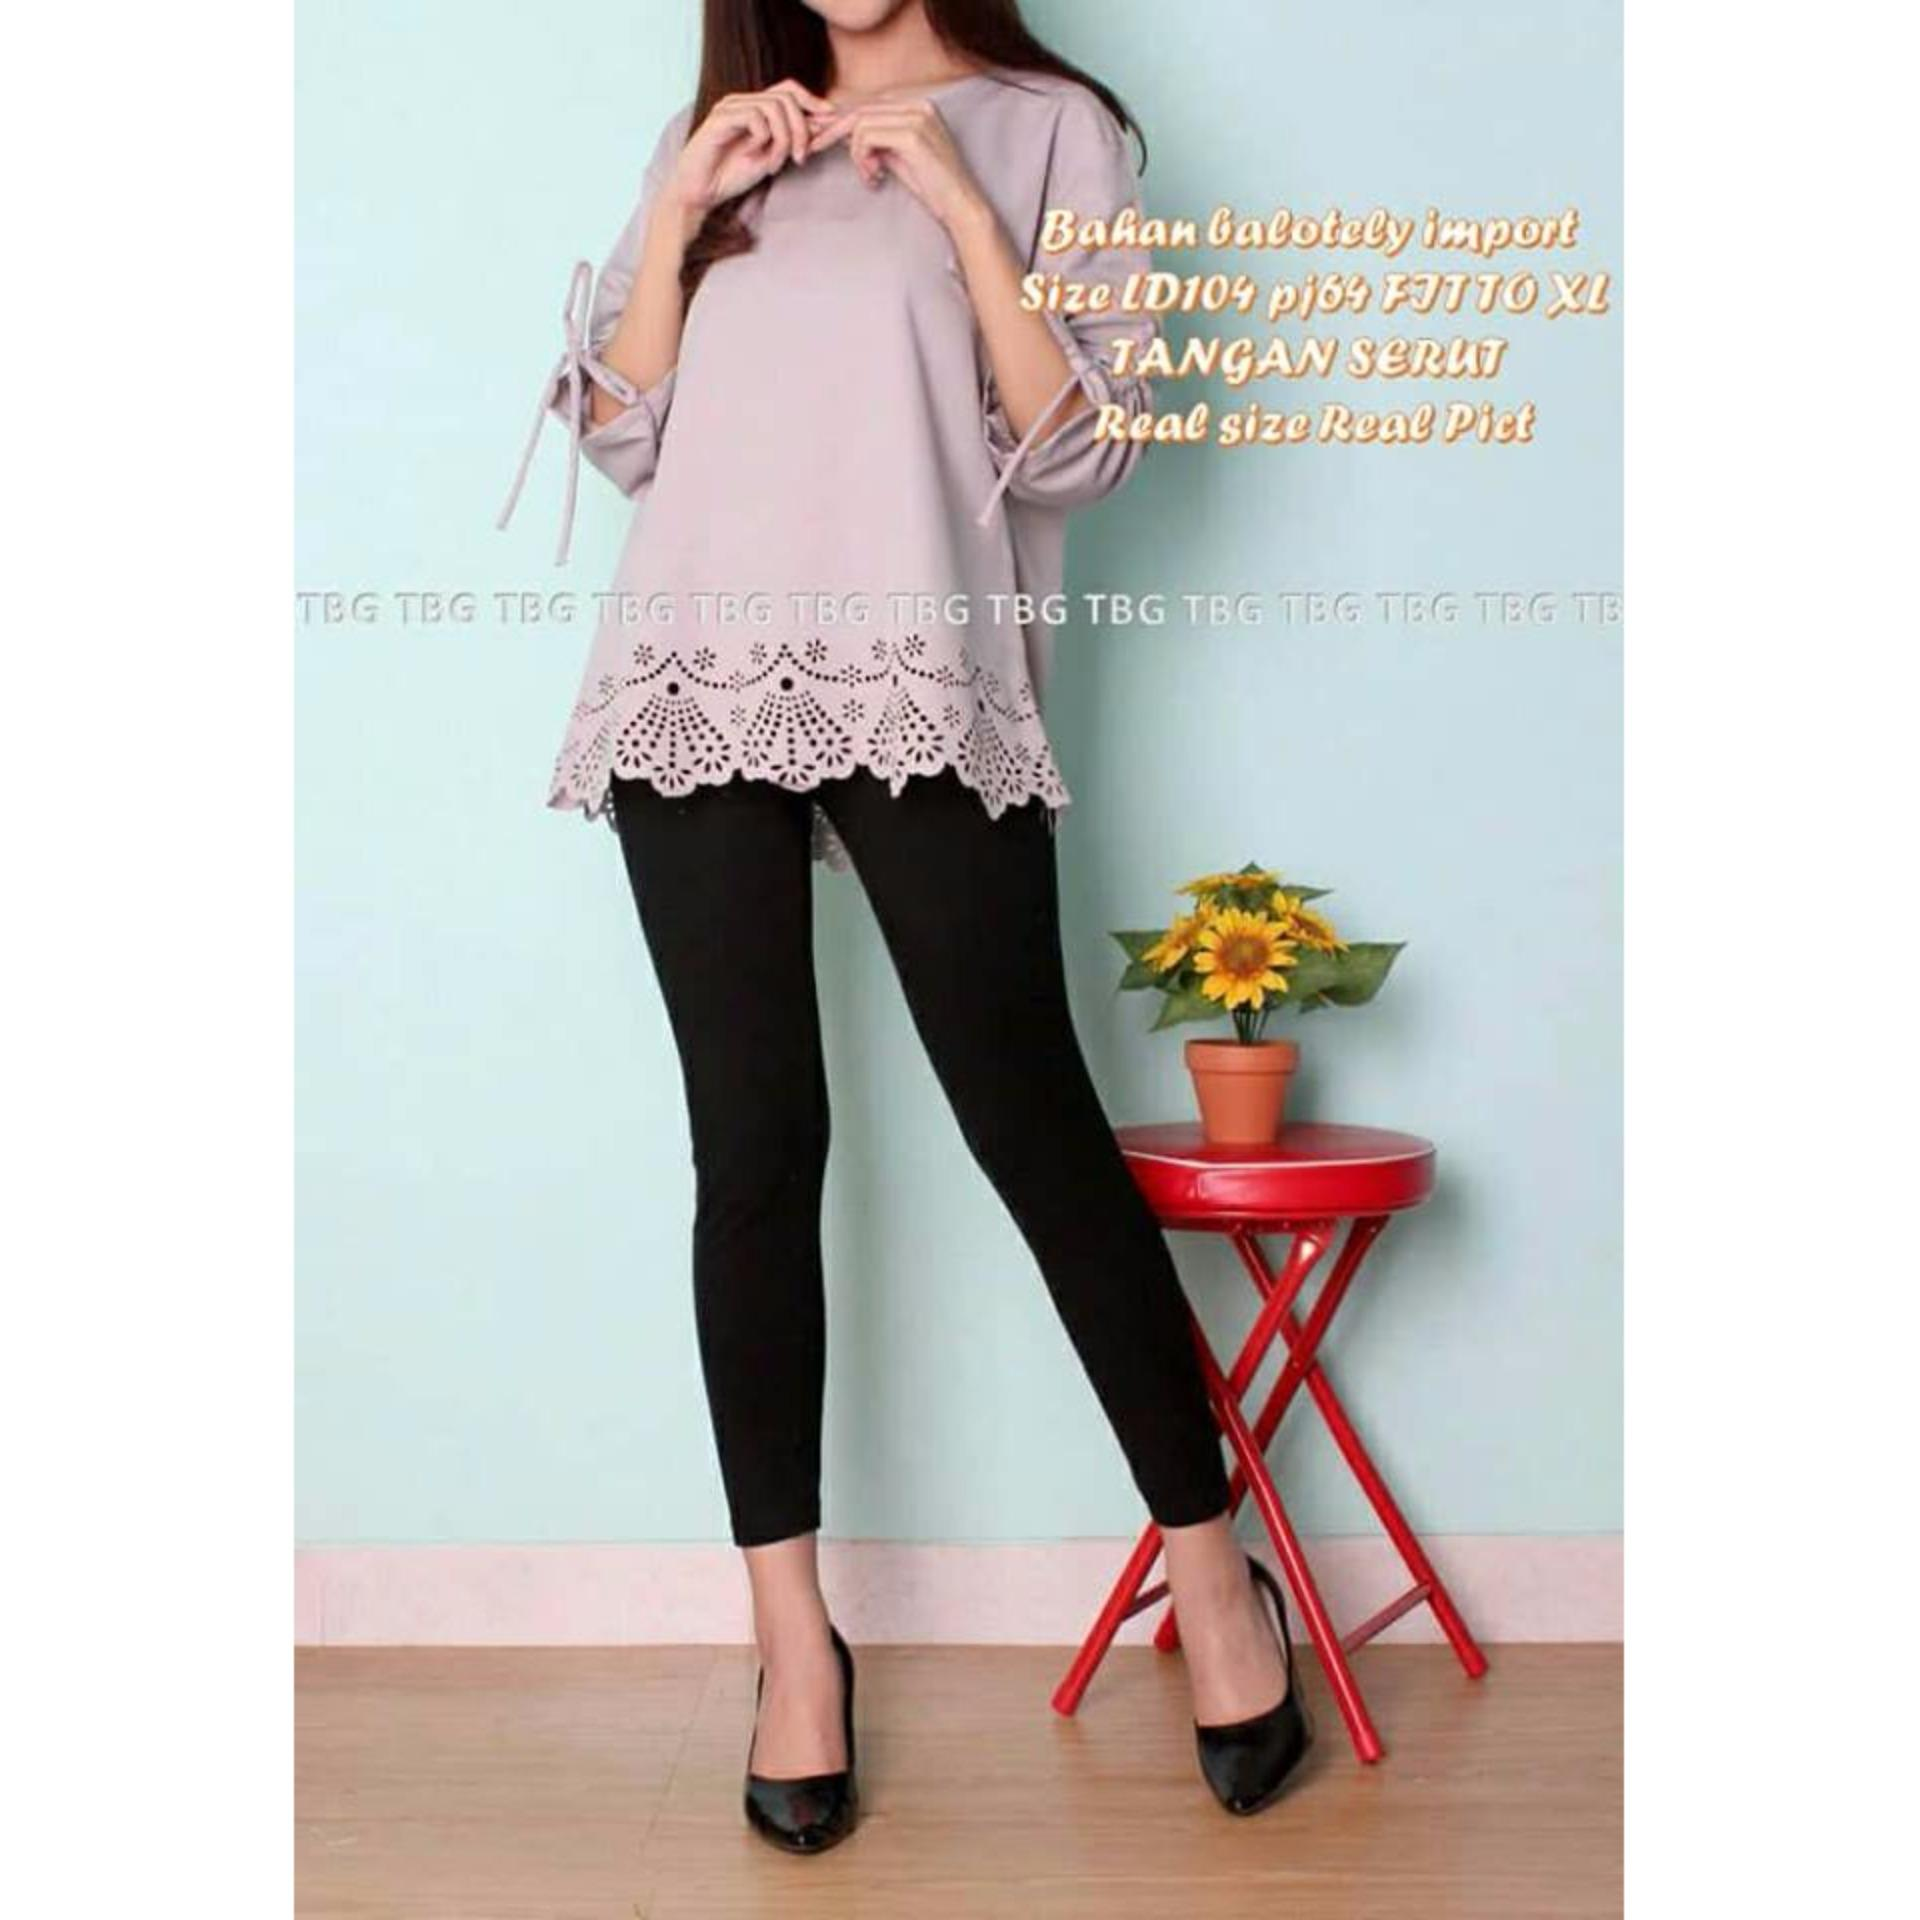 FASHION BLOUSE TUNIK KEMEJA BIG SIZE XXXL. Source ... SALWA . Source · Pencarian Termurah COUPLELOVER-BLOUSE LASERCUT PRETTY GREY -XL (REALPIC) UKURAN BESAR ...